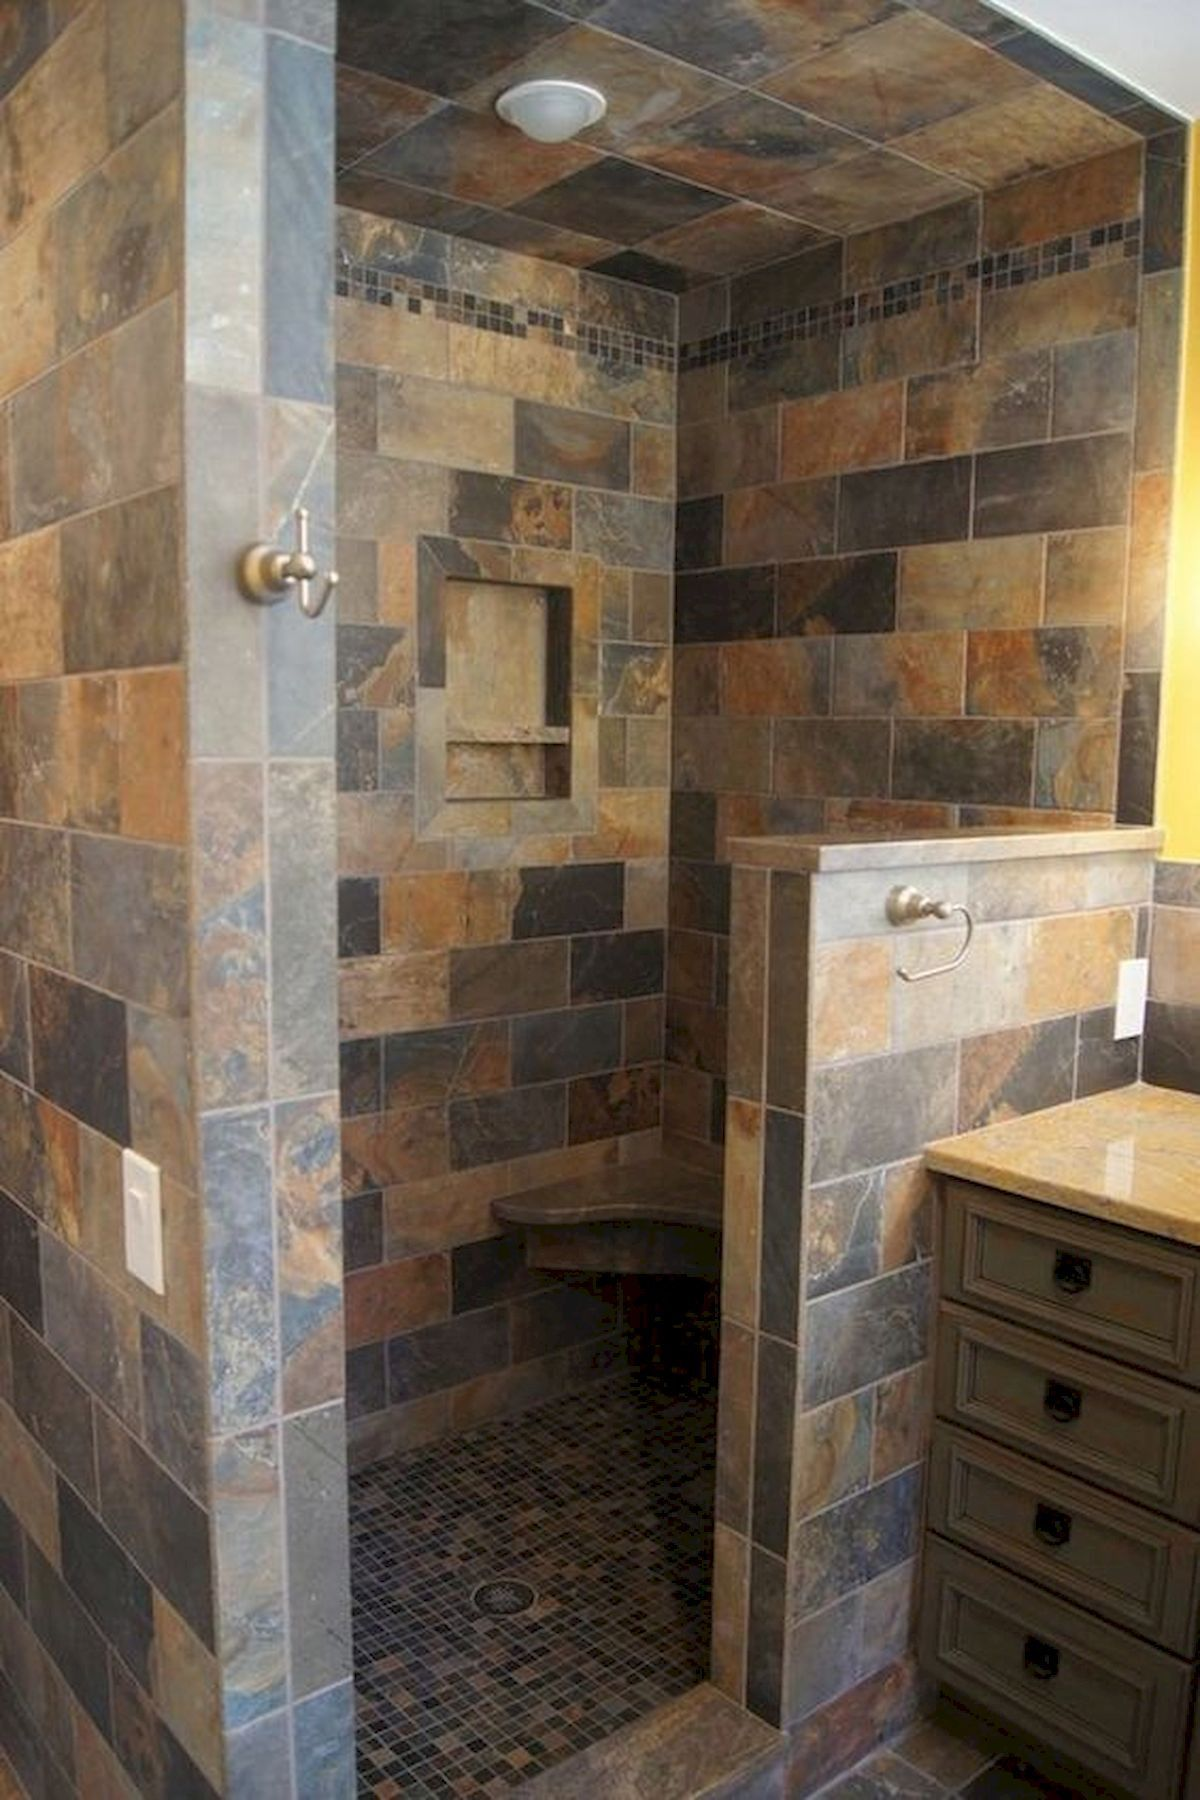 Walk In Shower Ideas Without Doors 2021 In 2020 Bathroom Remodel Shower Open Showers Rustic Shower